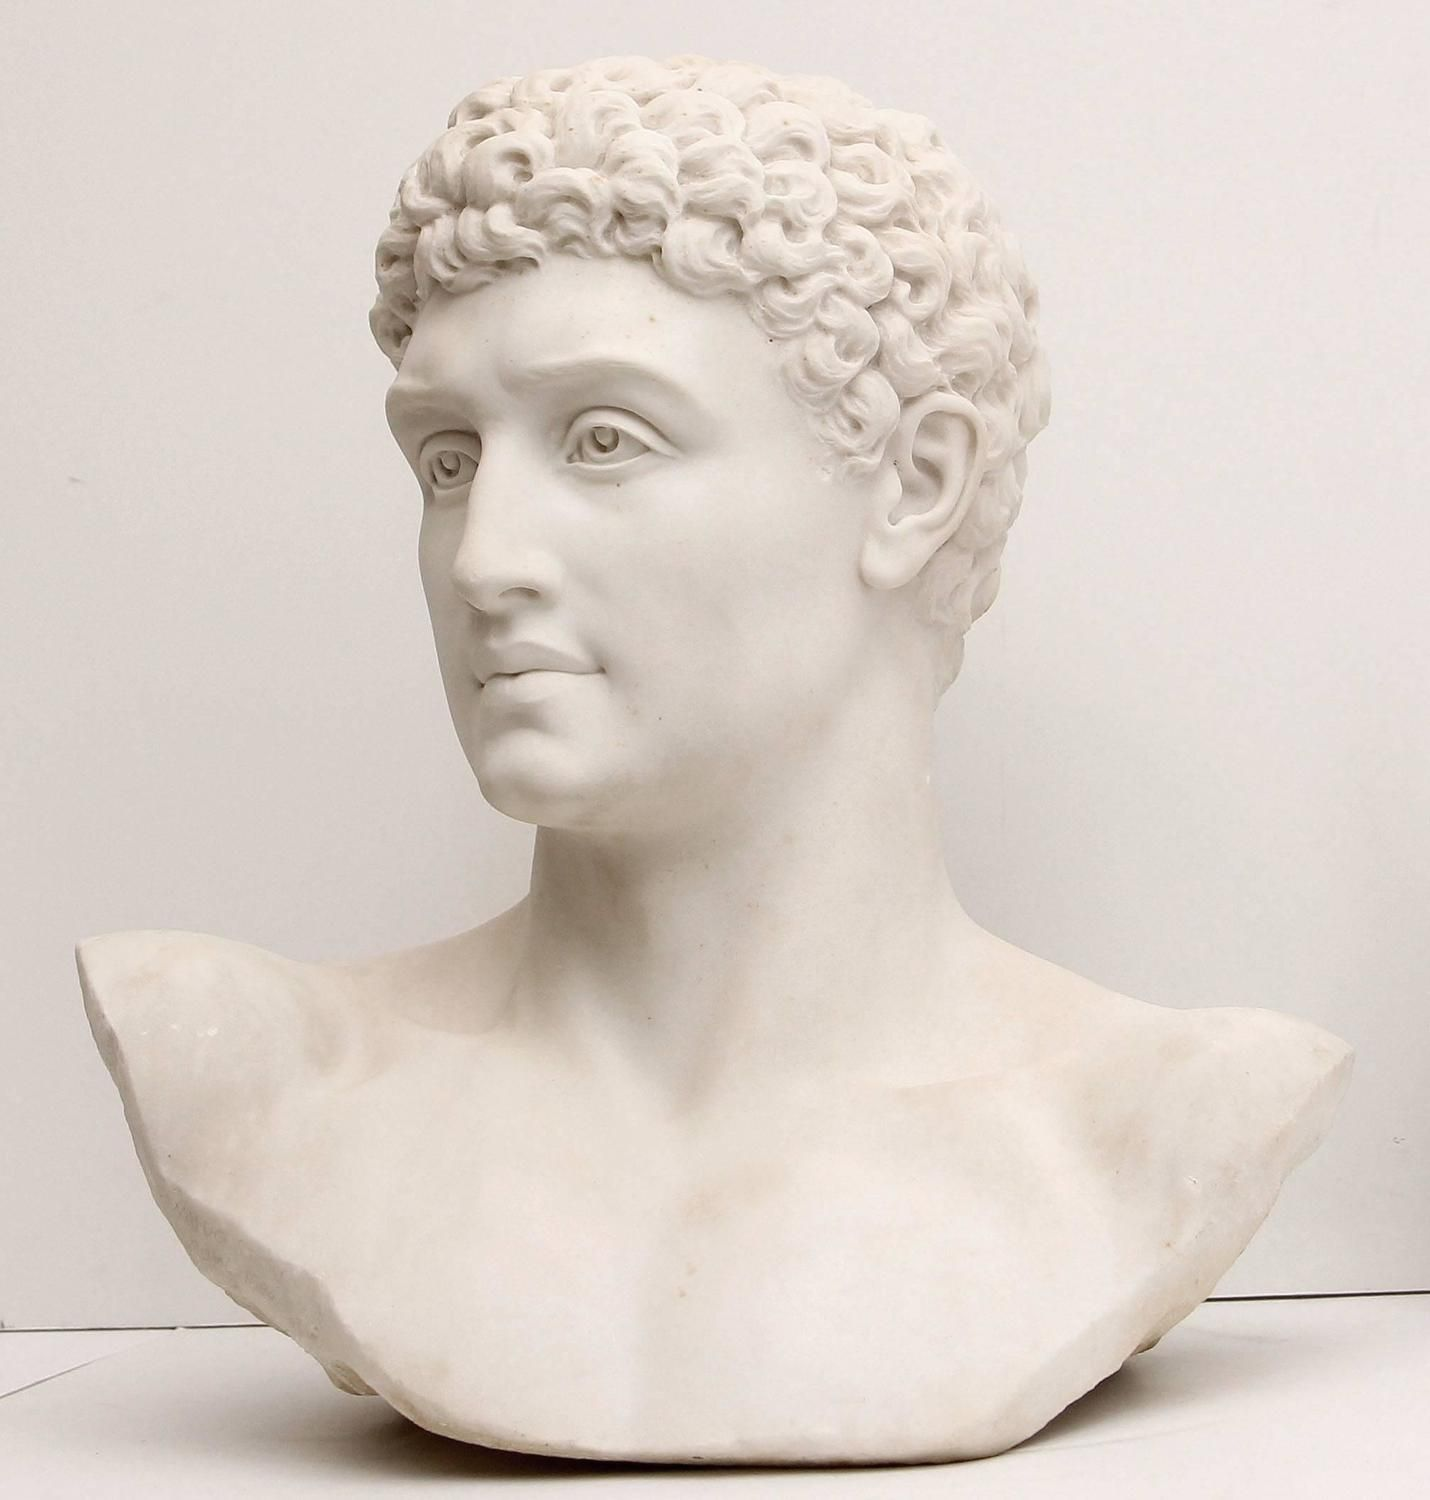 Hermes Classical Greco Roman Marble Bust By American Sculptor Waldo Story 1stdibs Com Marble Bust Modern Sculpture Sculptor